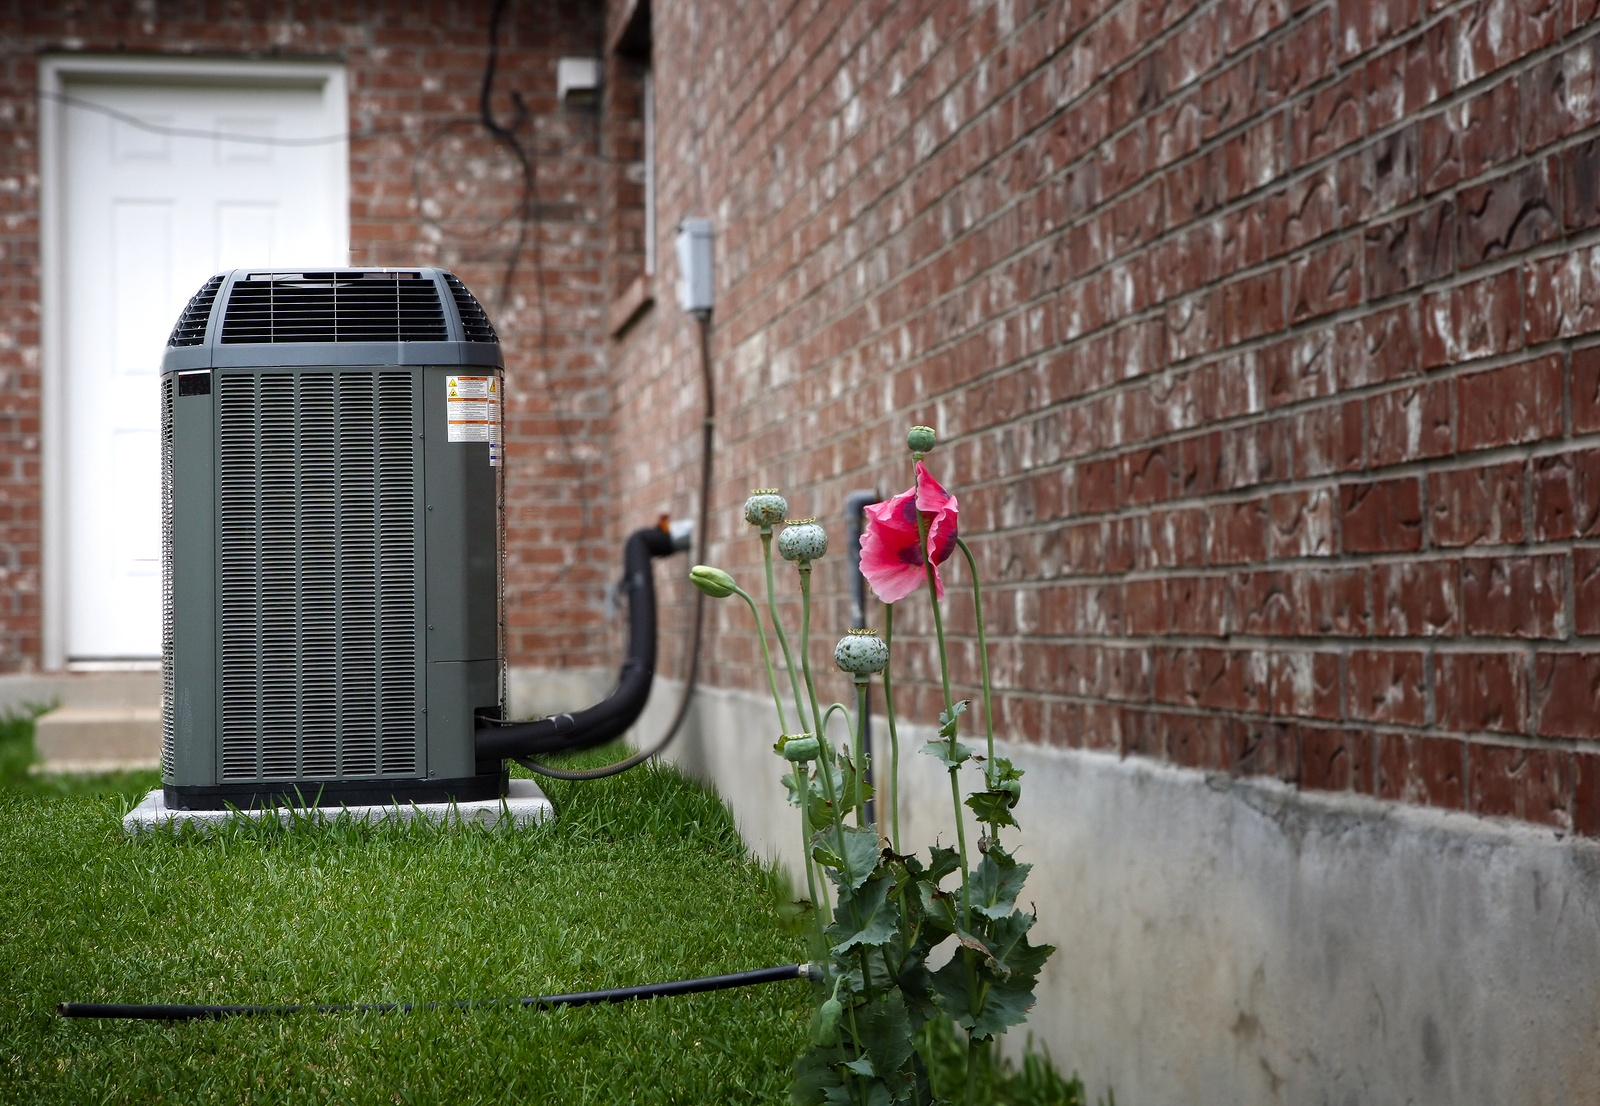 bigstock-Air-conditioner-on-backyard-31978166.jpg